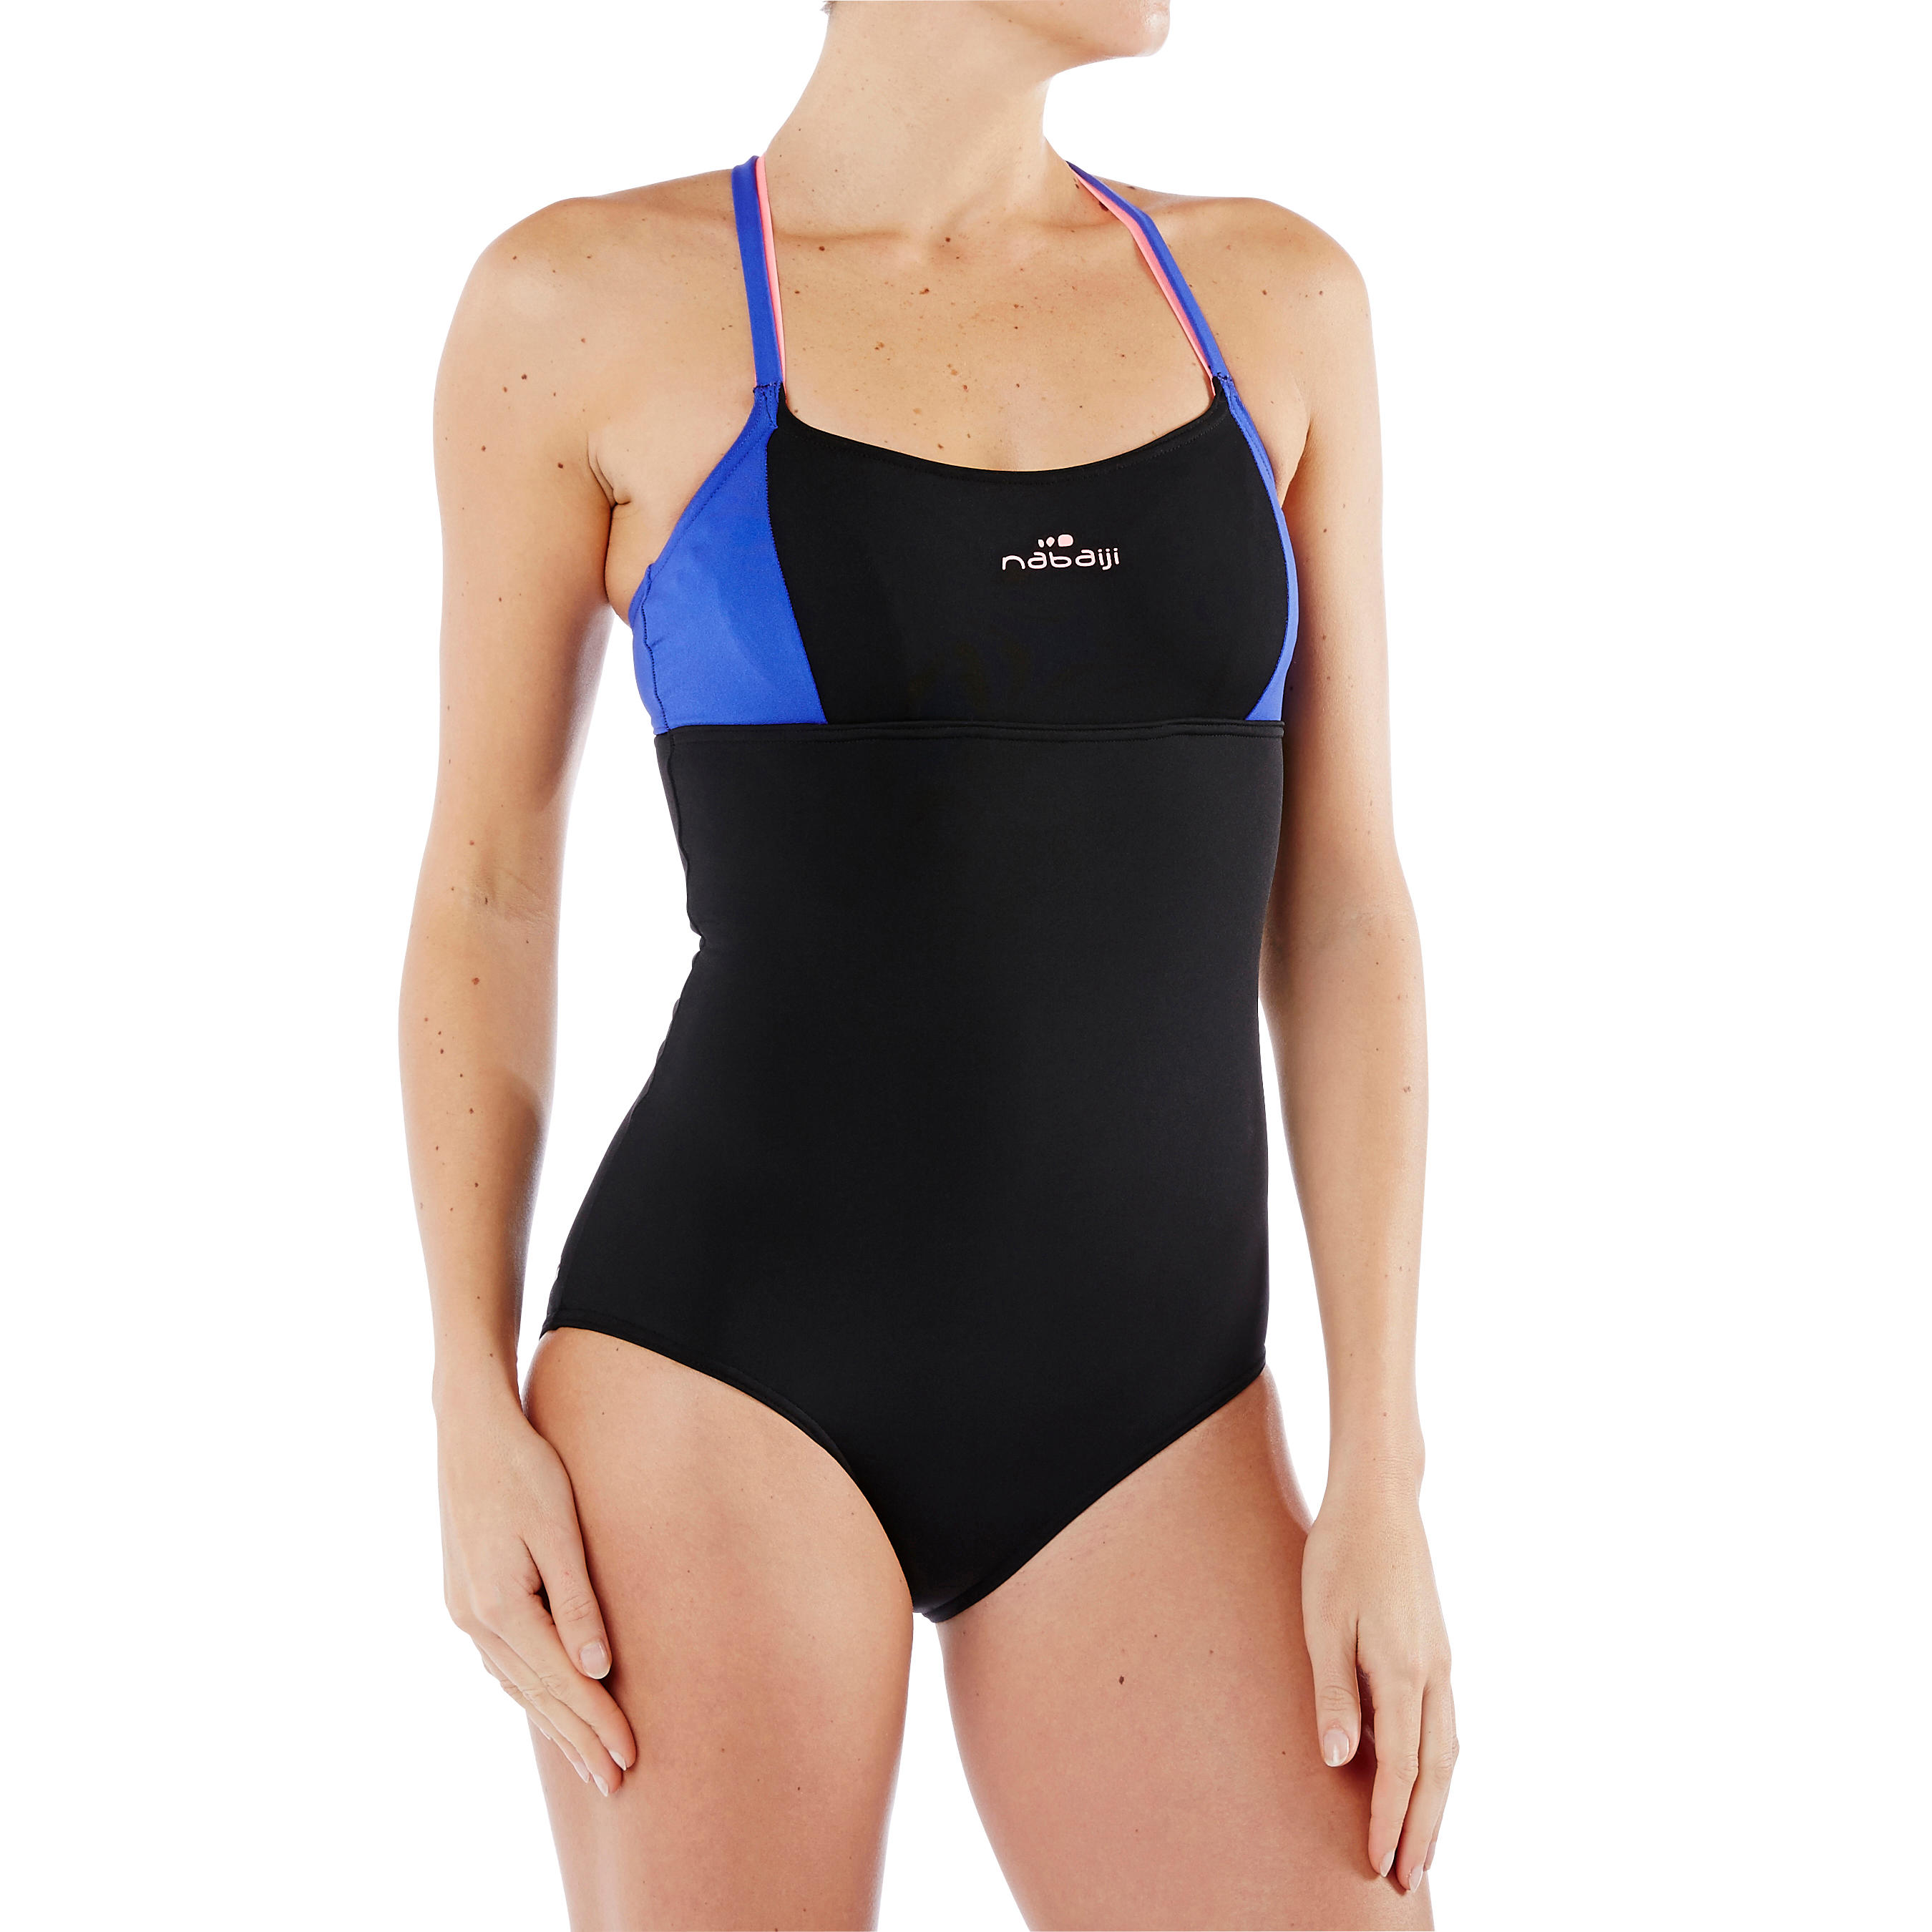 Meg ultra chlorine-resistant one-piece aquafitness pool swimsuit black blue